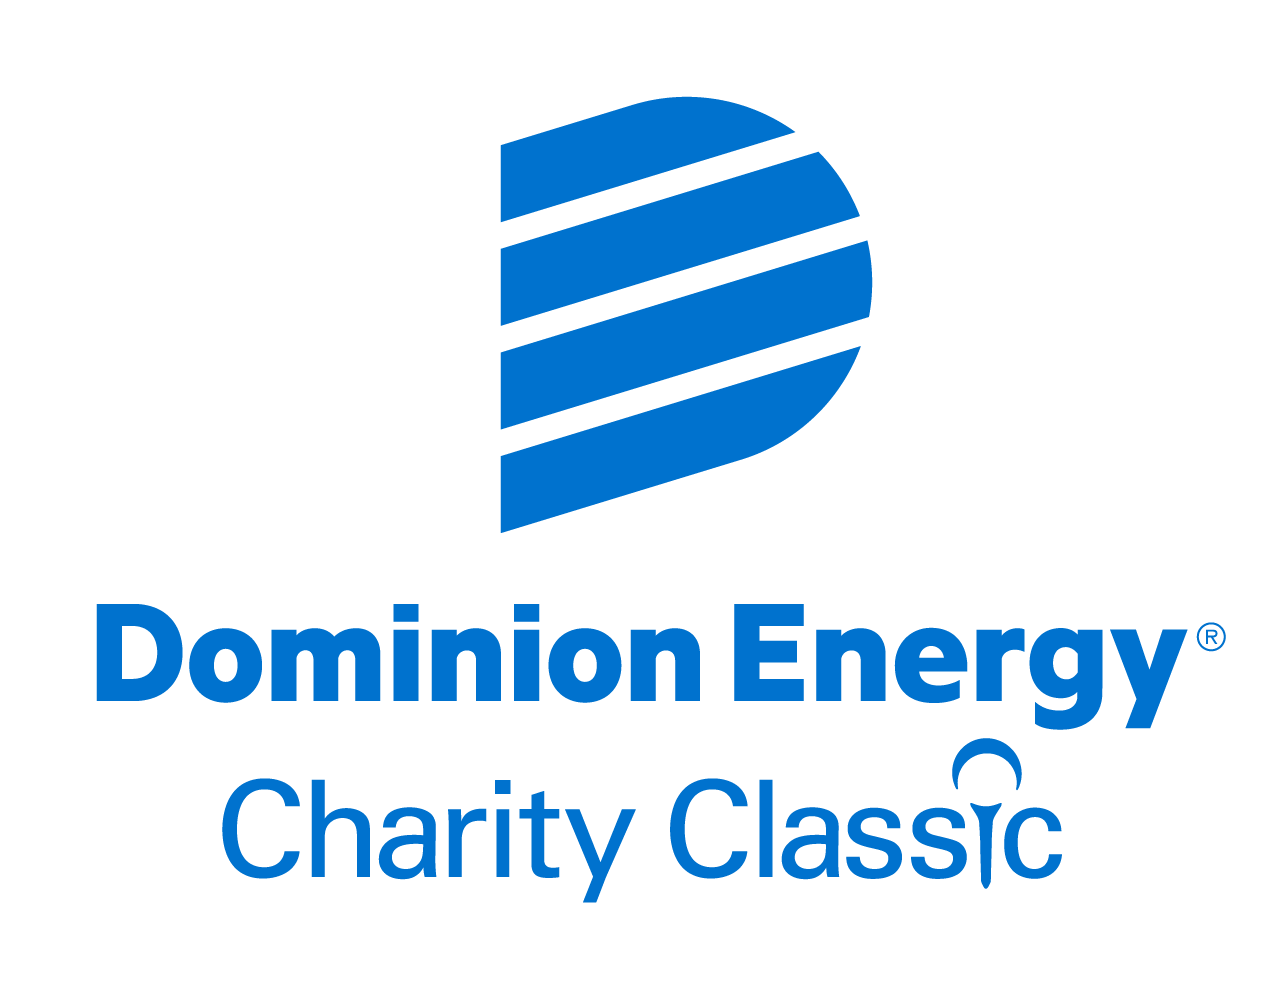 Dominion Energy Charity Classic